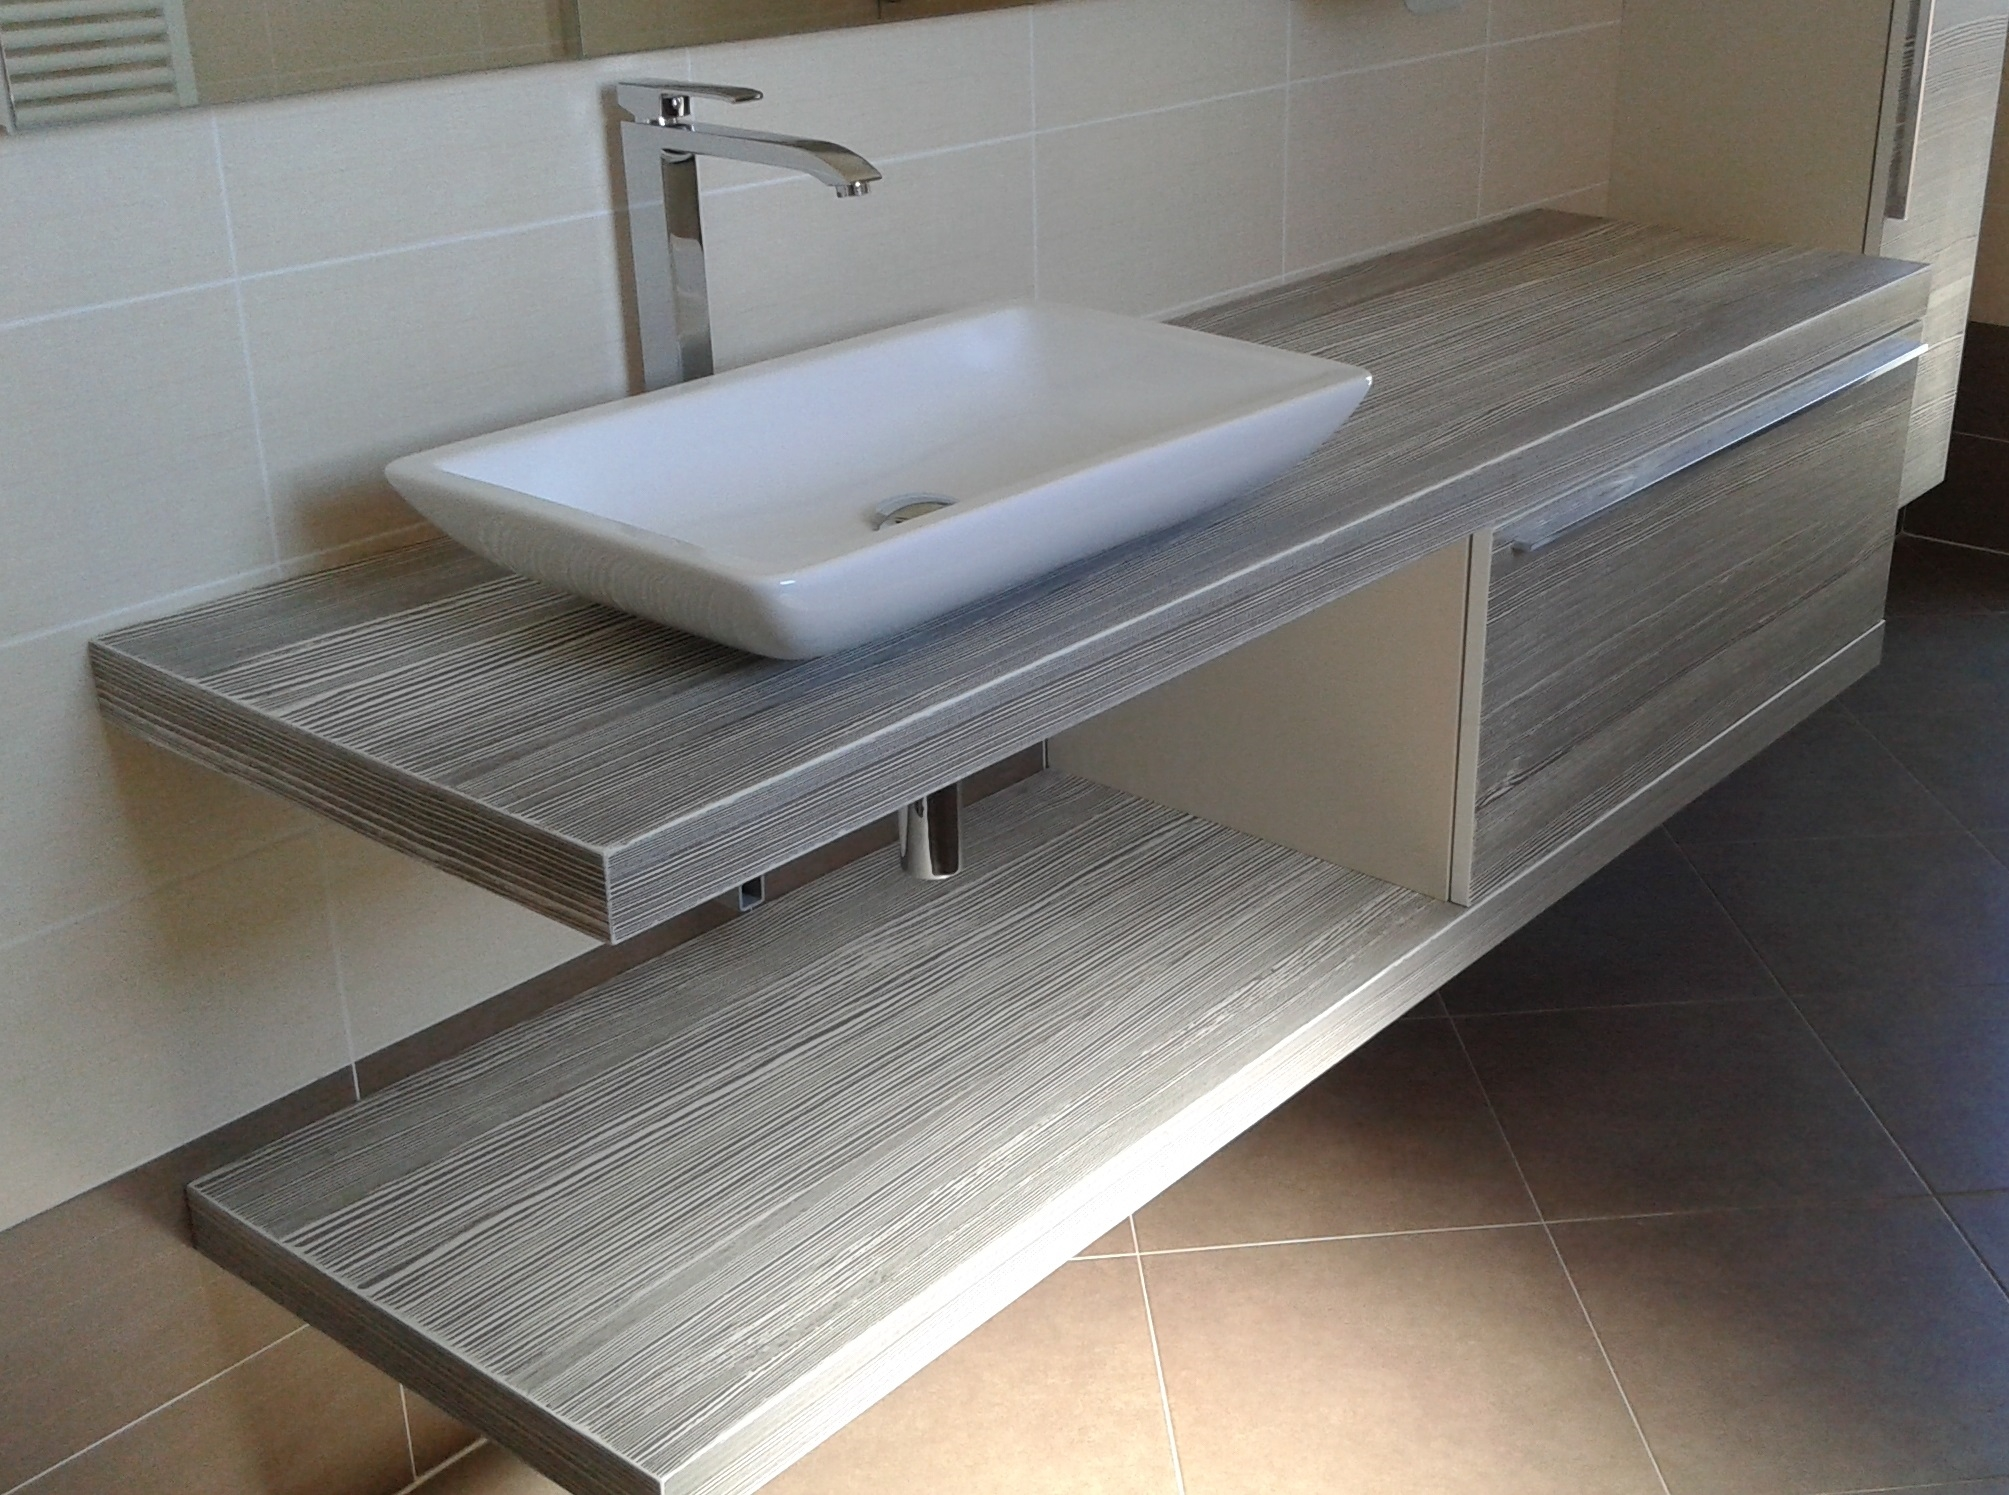 Best Arredo Bagno Bologna Images - Amazing House Design ...